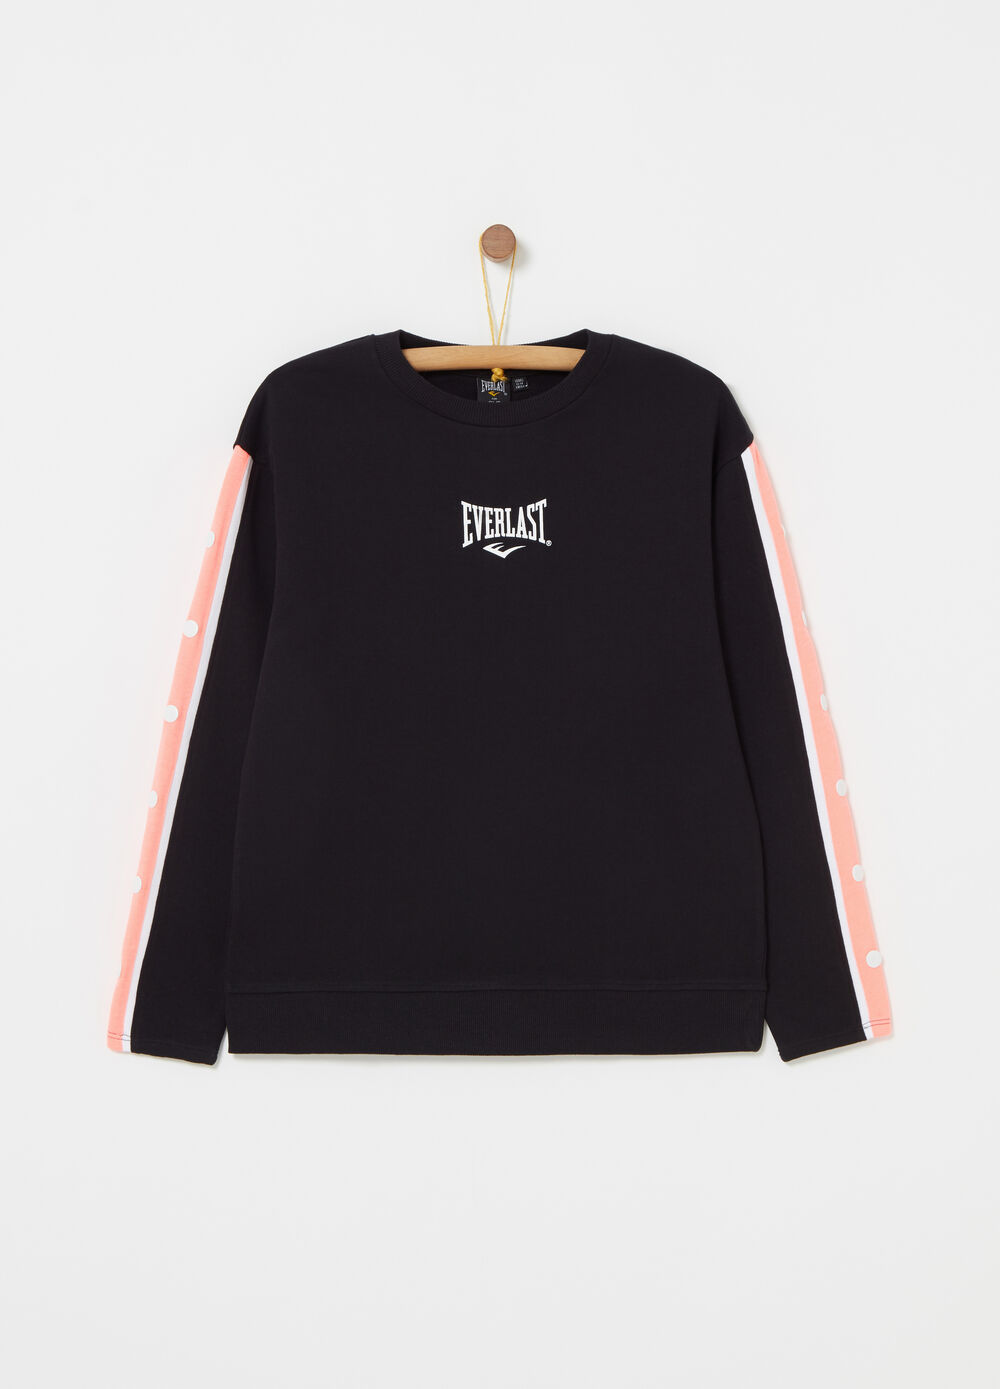 Everlast sweatshirt with inserts and false buttons